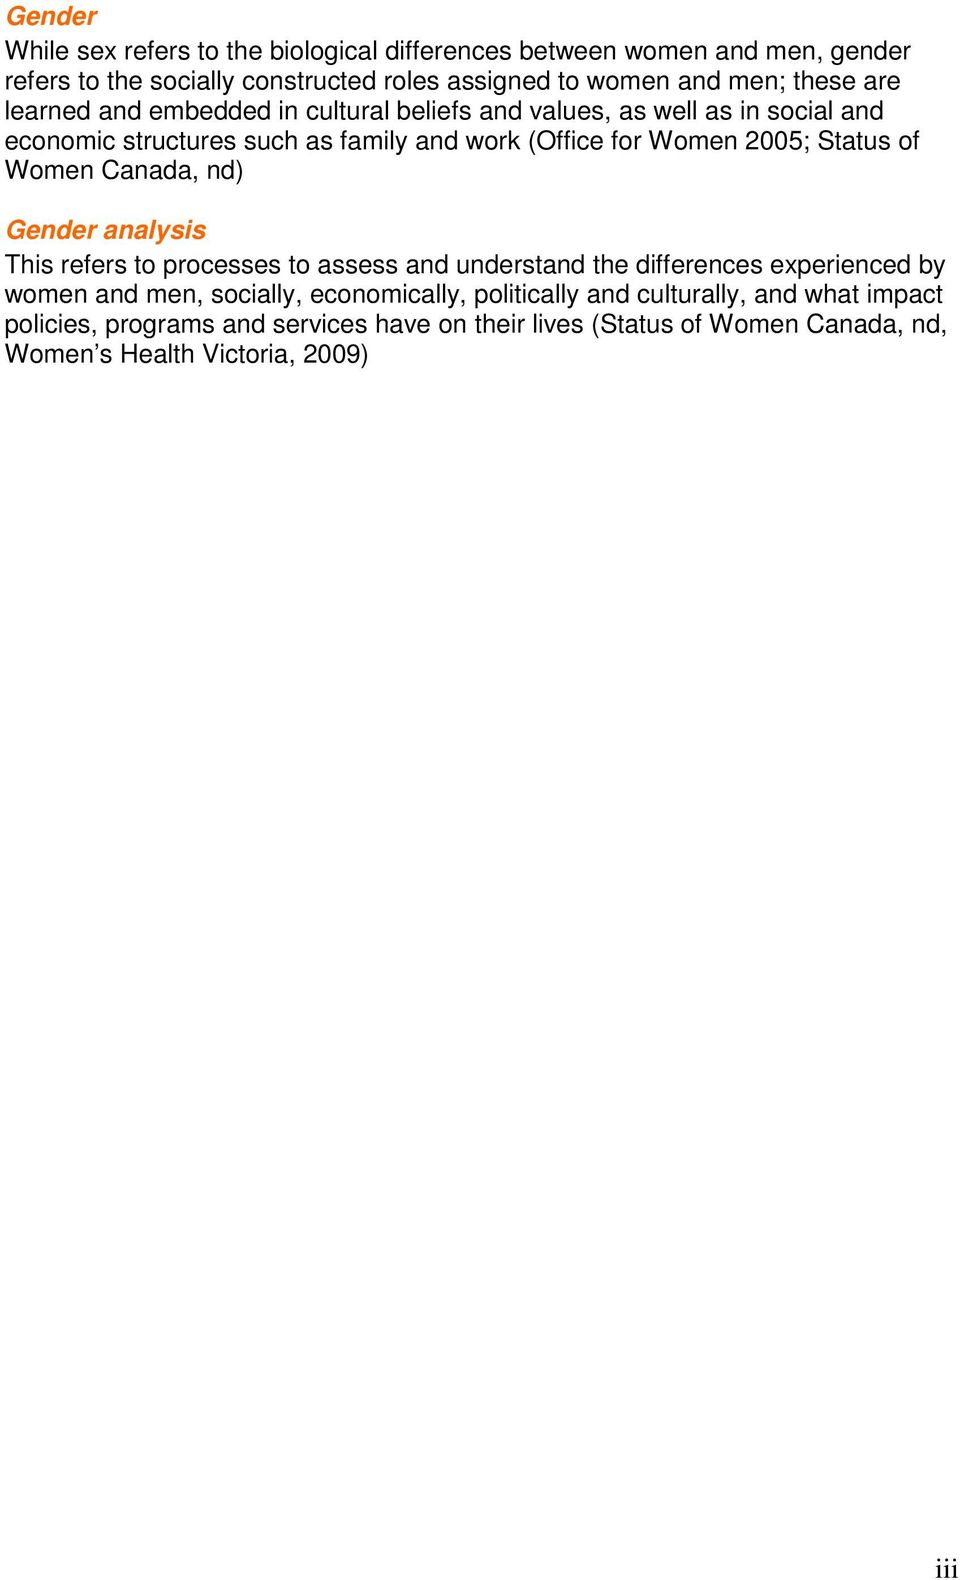 of Women Canada, nd) Gender analysis This refers to processes to assess and understand the differences experienced by women and men, socially, economically,